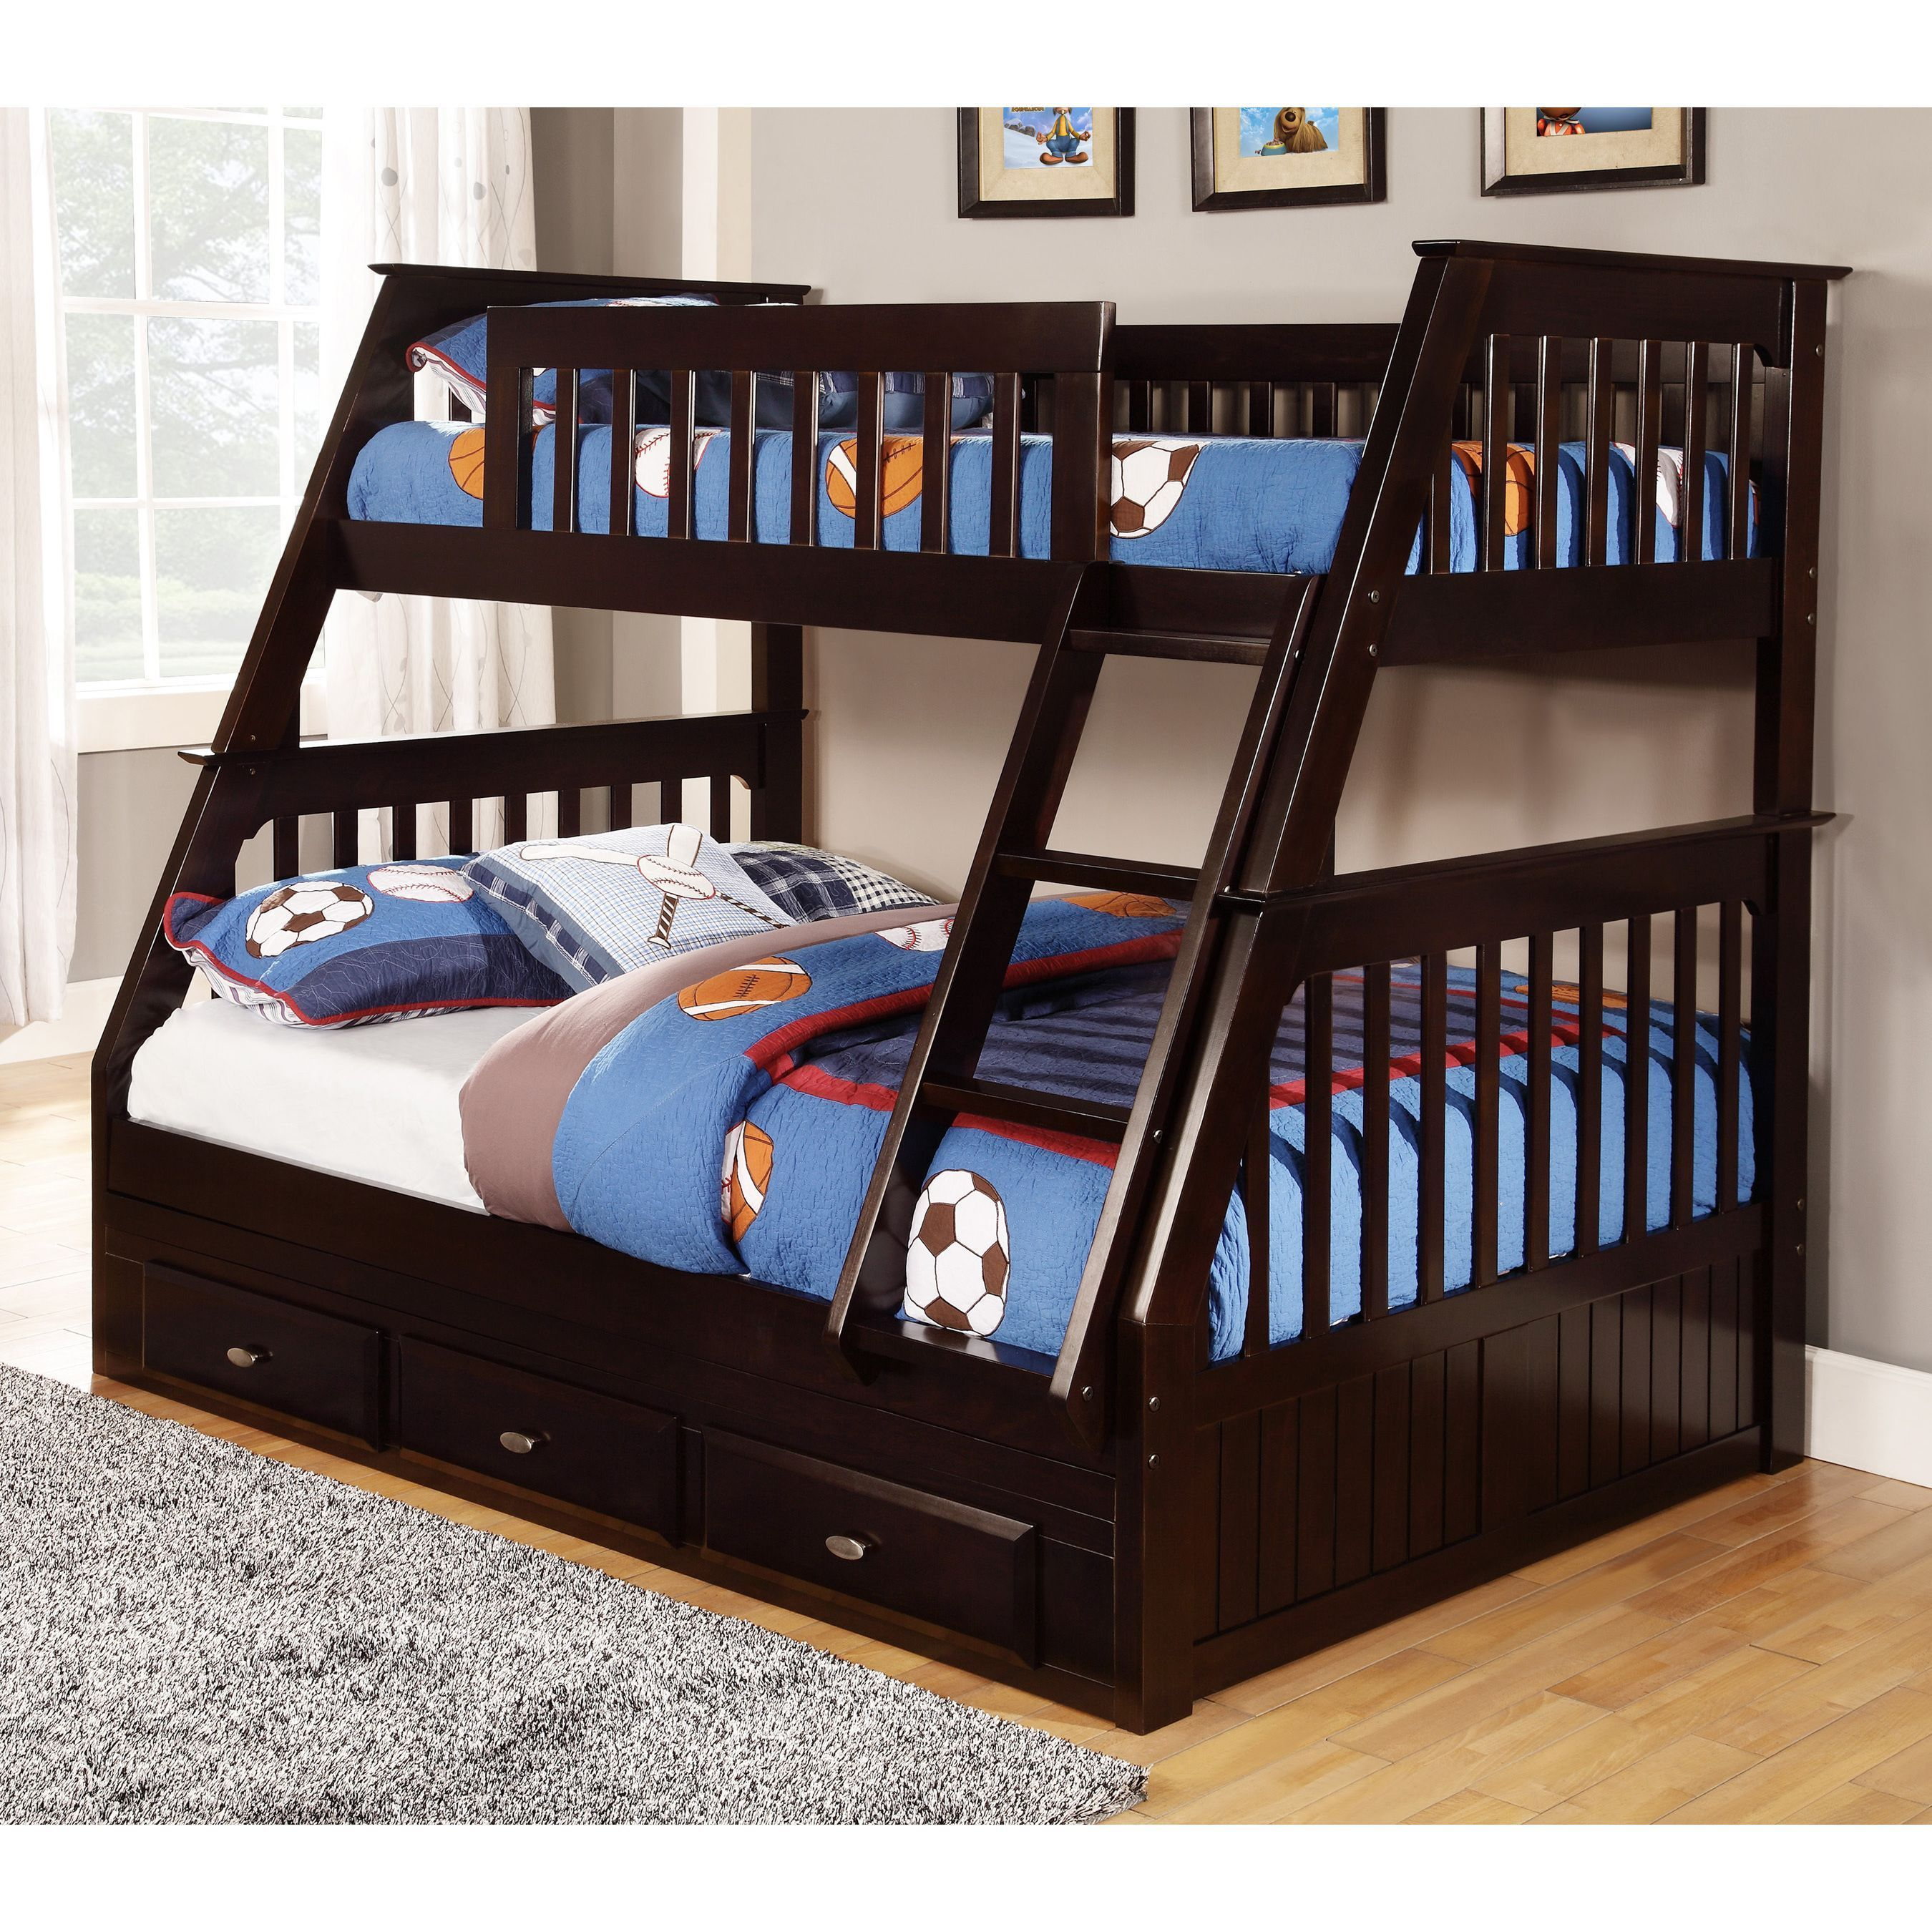 Espresso Pine Wood TwinoverFull Bunk Bed with Drawers